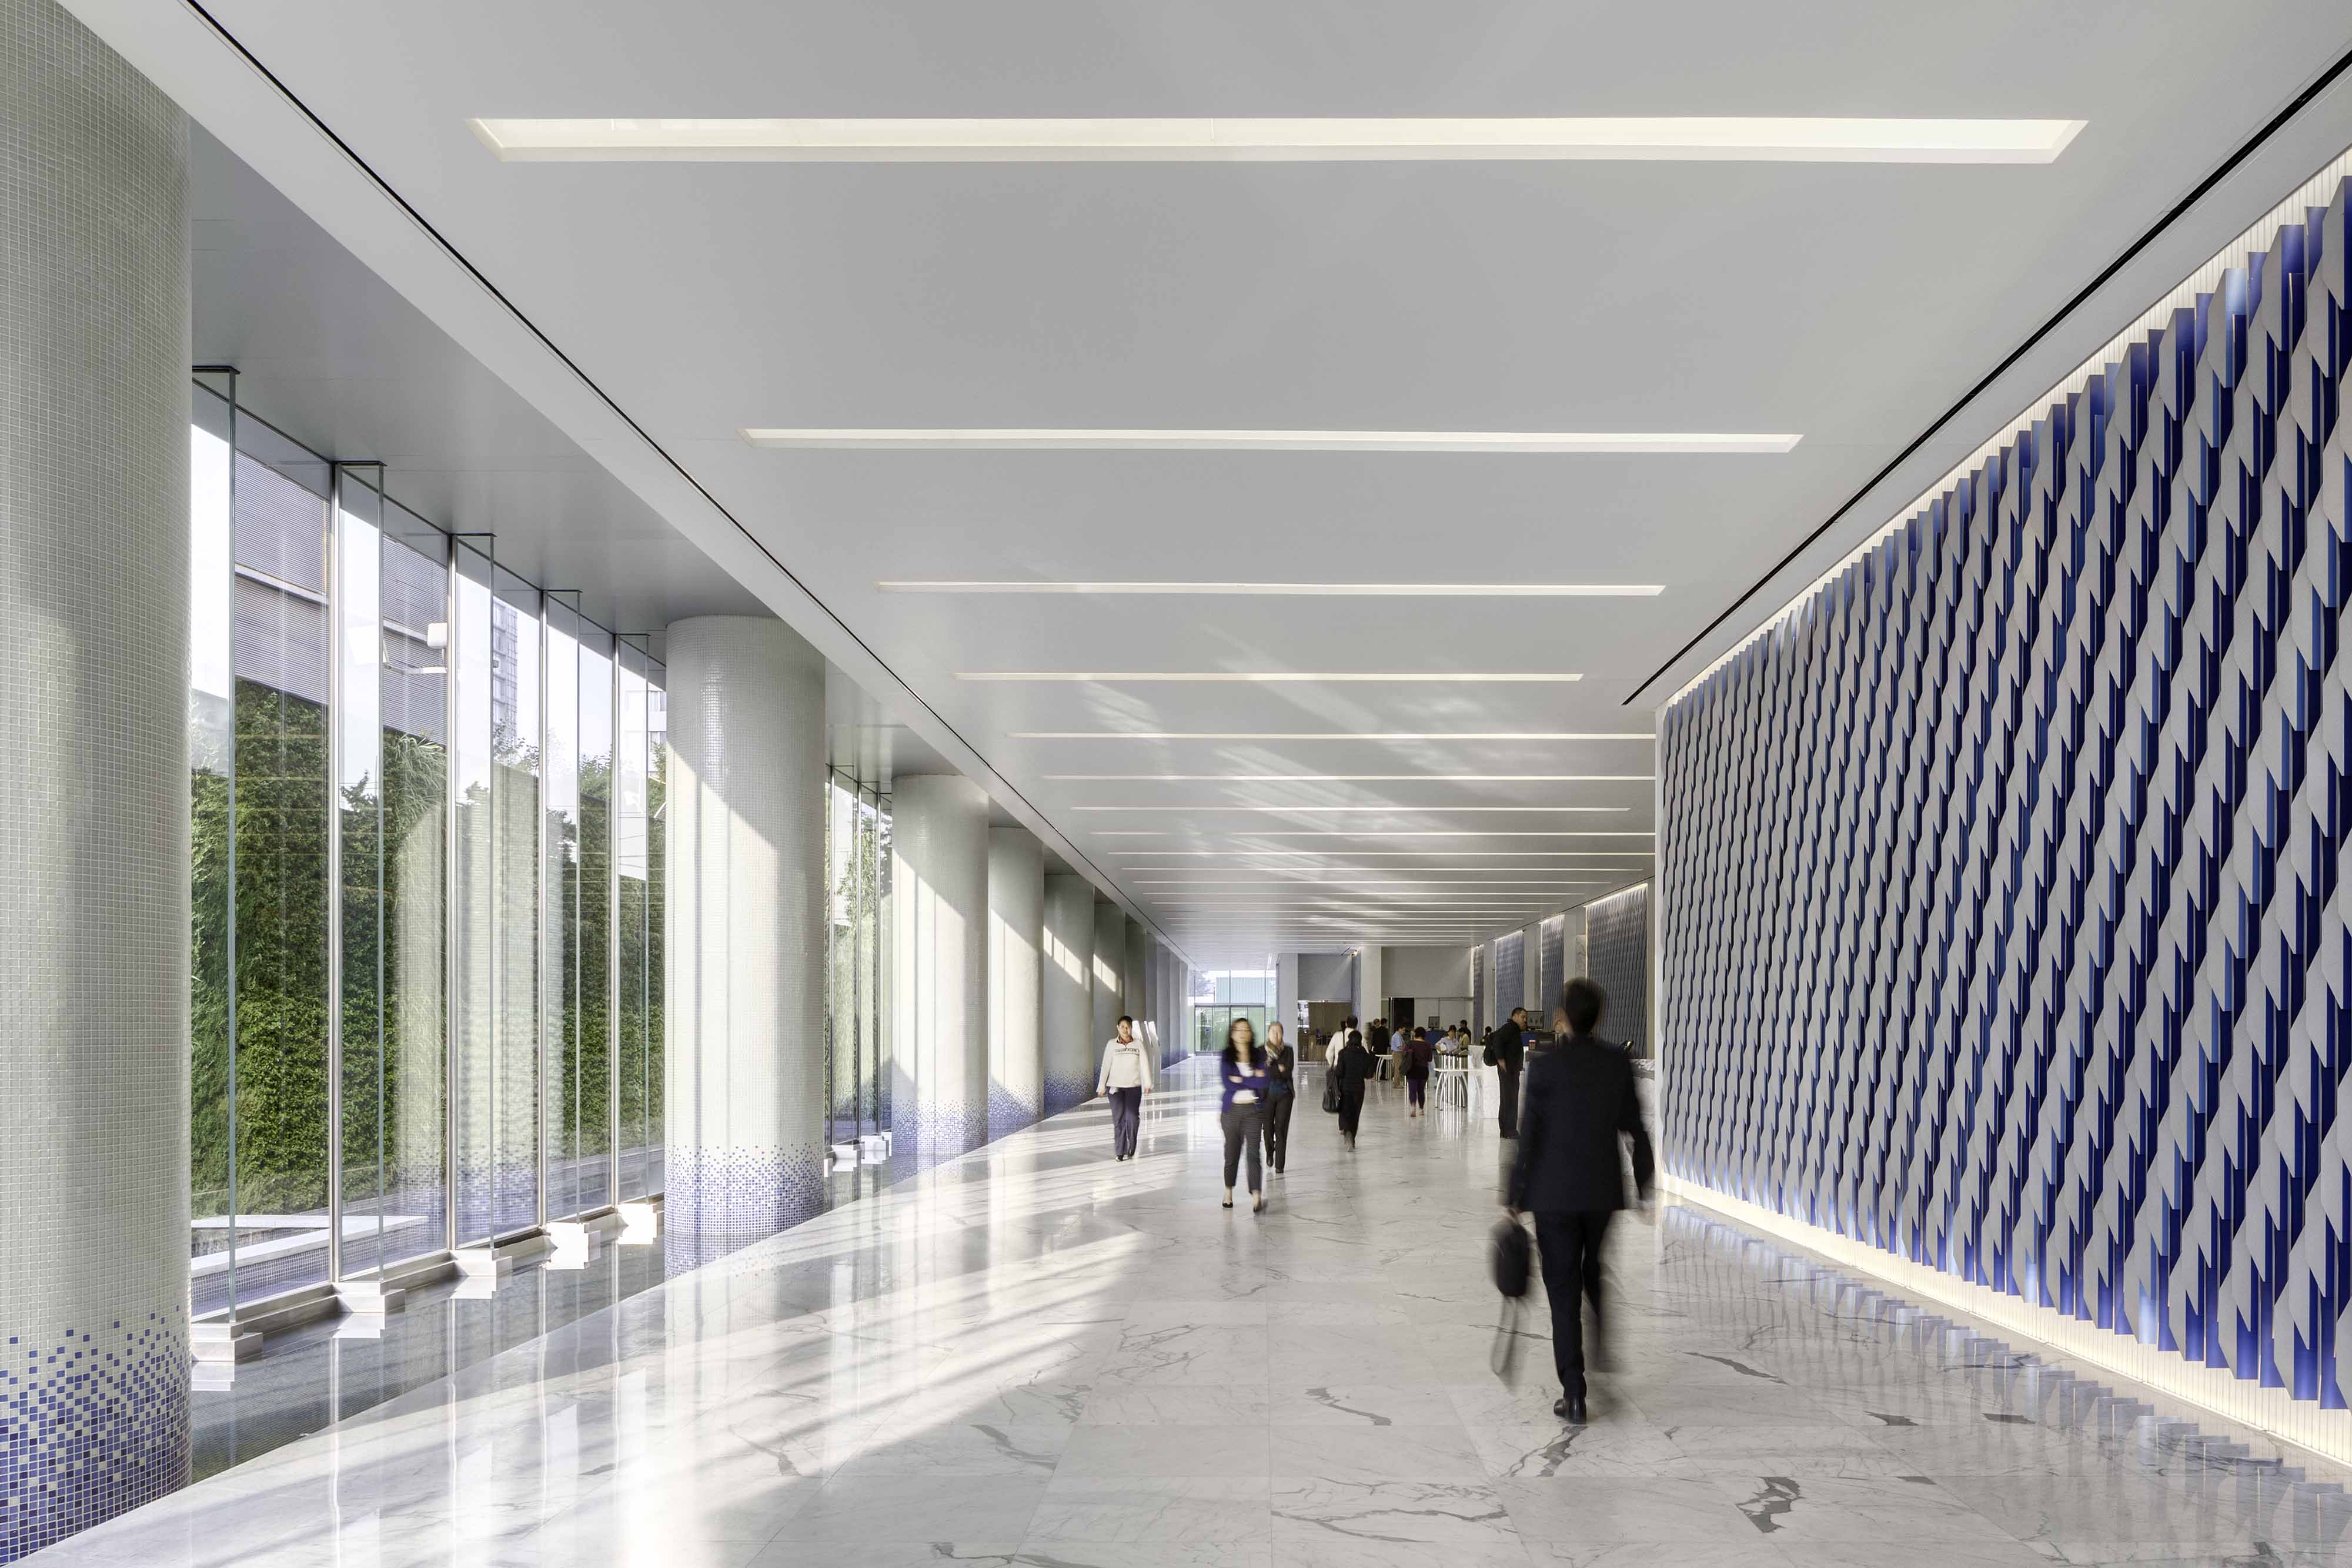 Skidmore, Owings & Merrill LLP